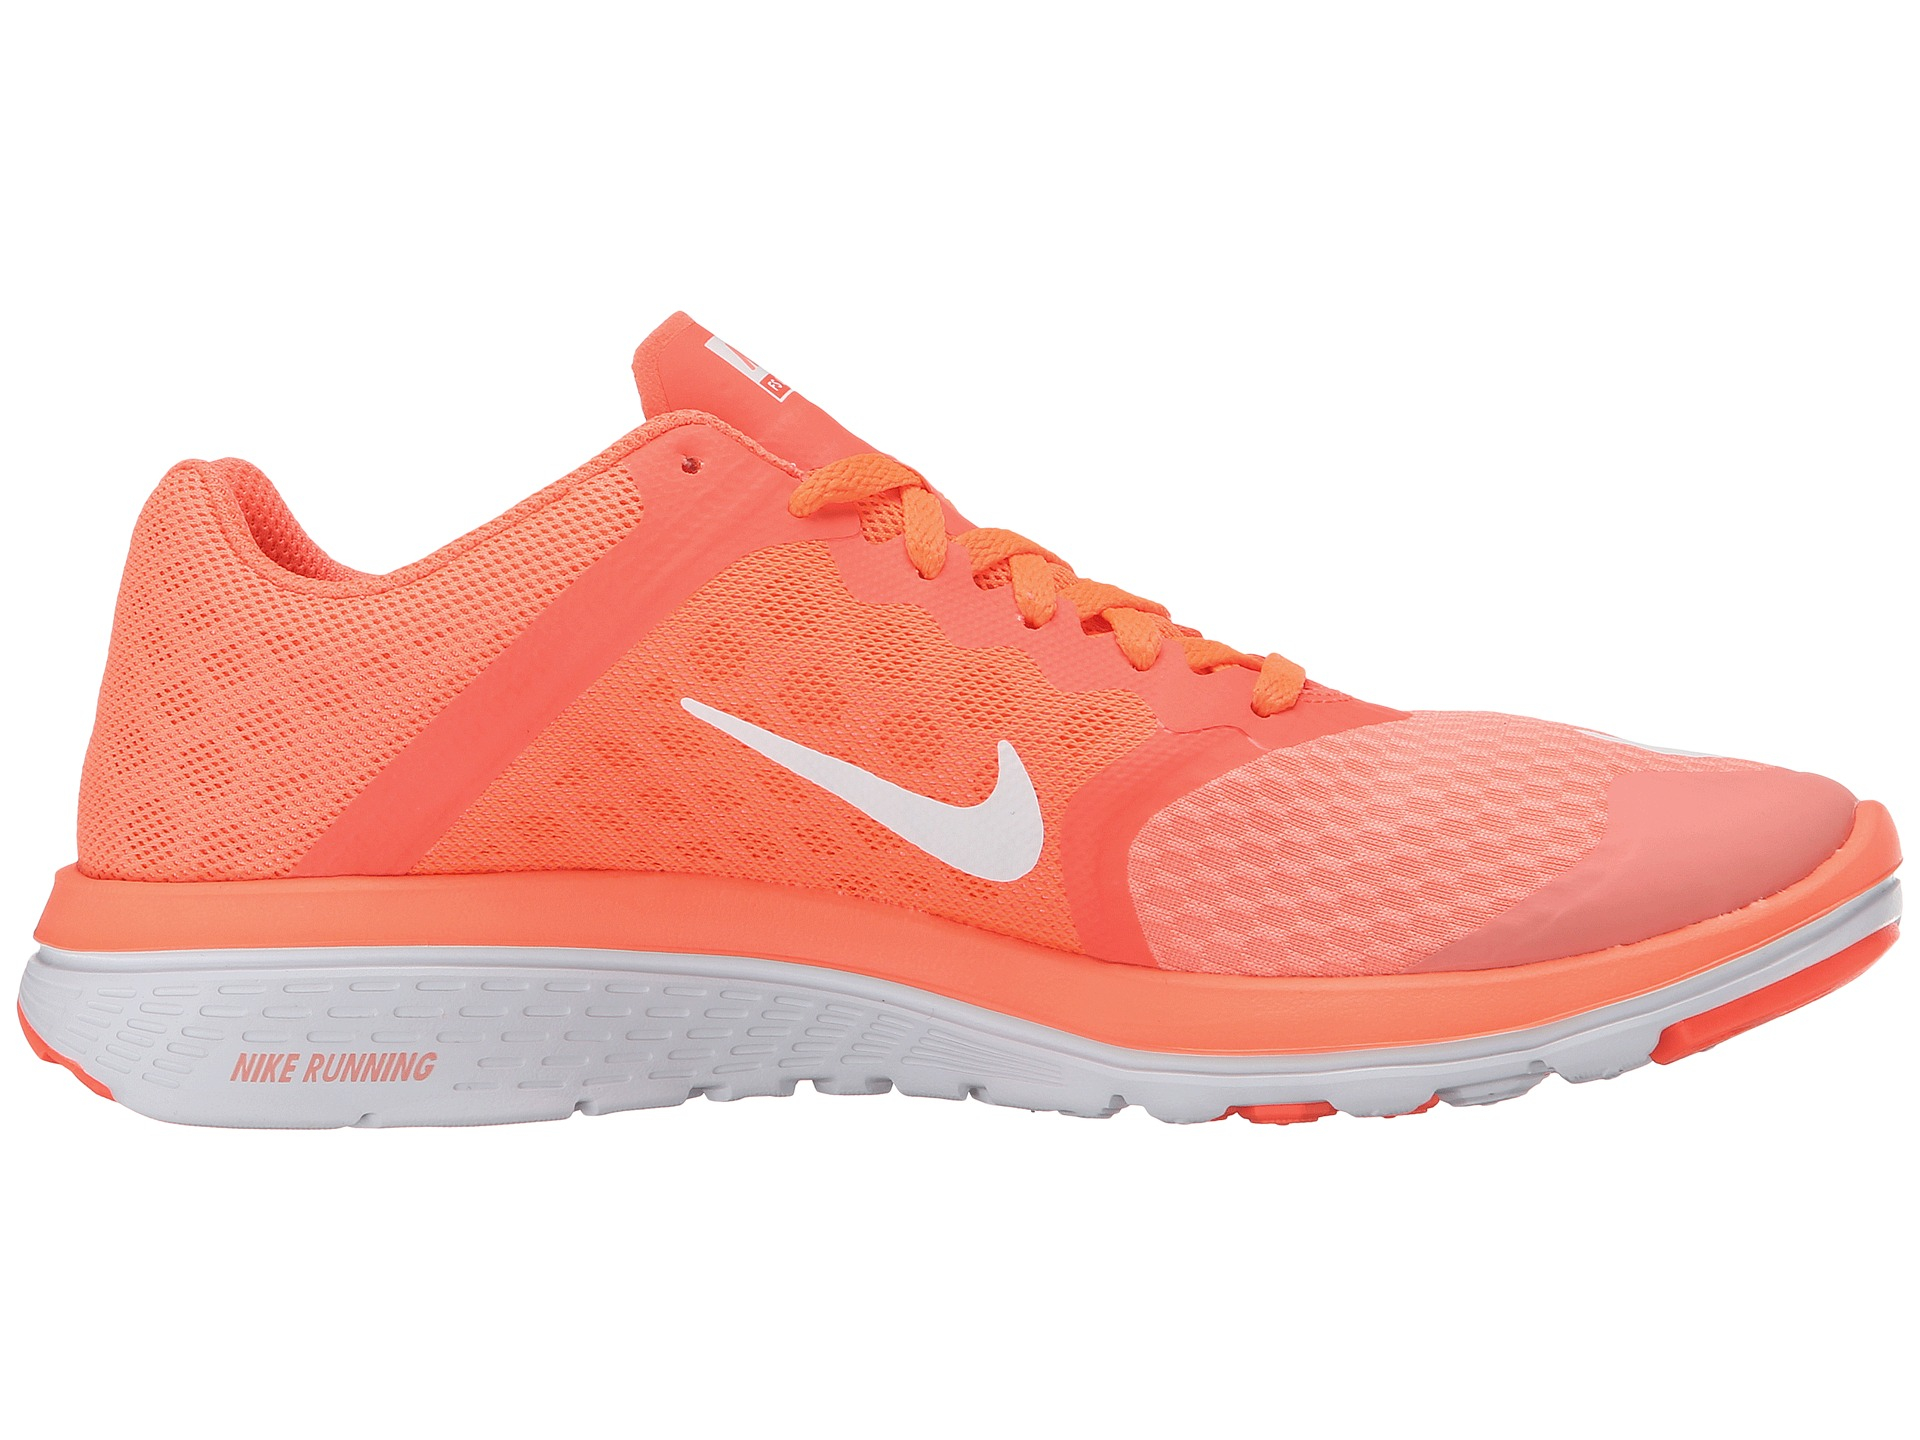 check out e50ea 86c30 Nike Fs Lite Run 3 in Pink for Men - Lyst